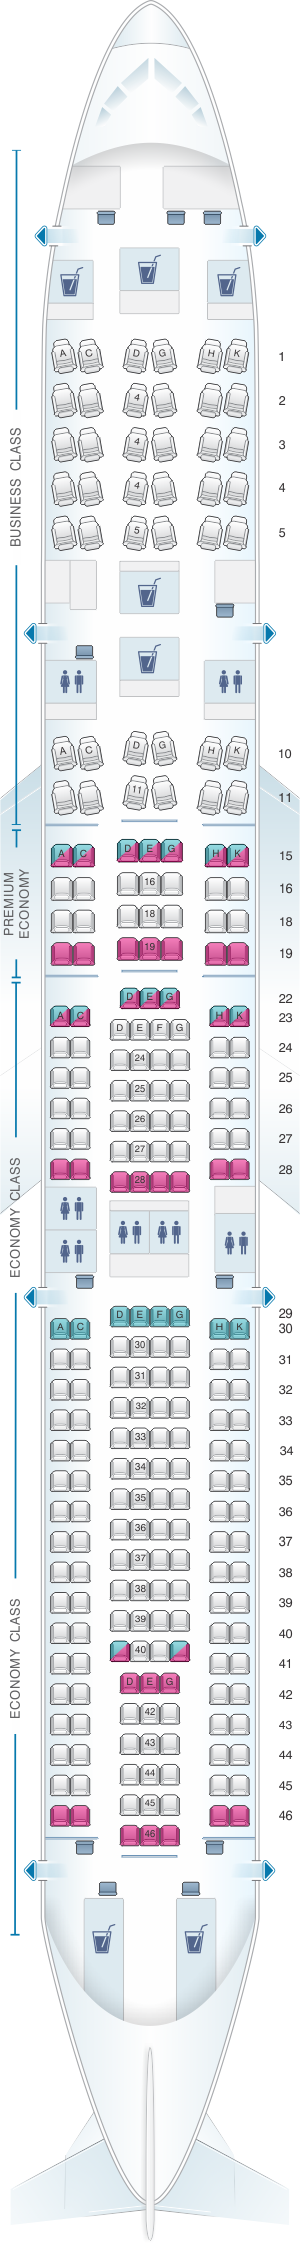 Seat map for Lufthansa Airbus A330 300 255pax